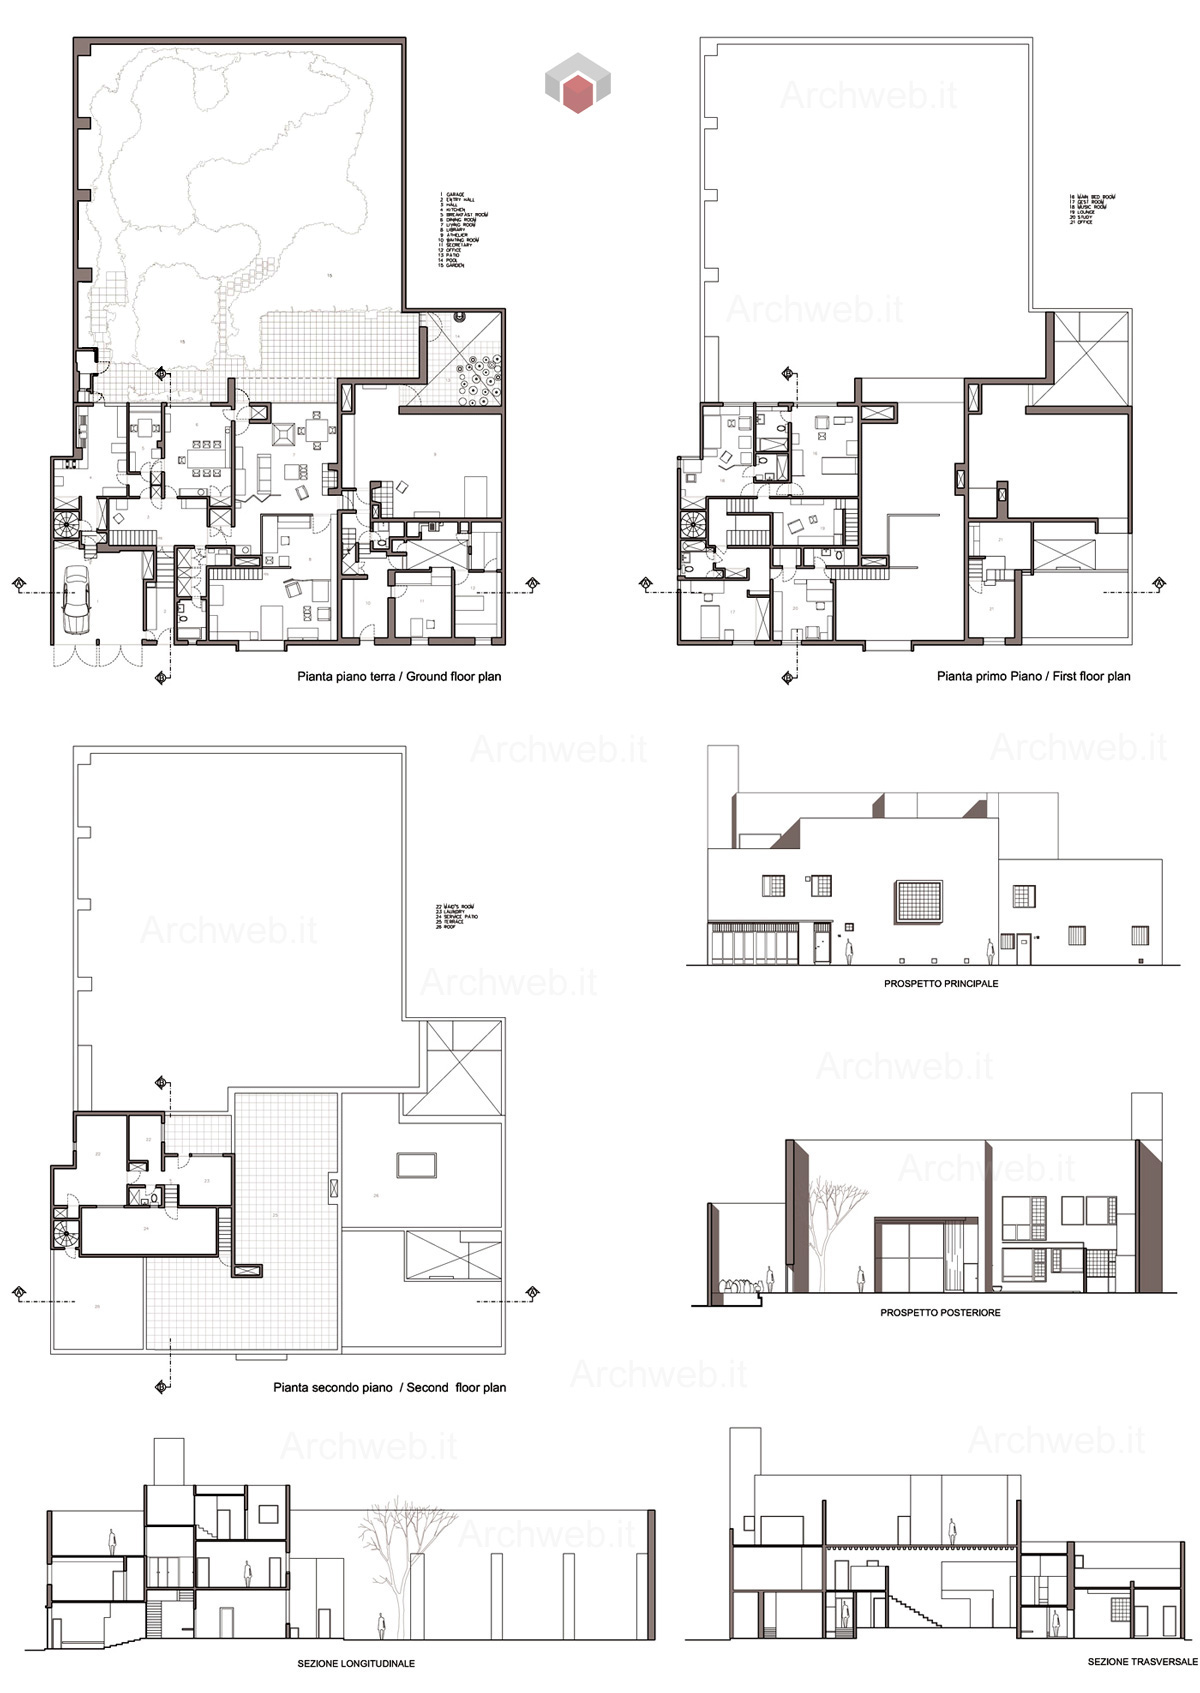 Wednesday Word On Interior Design 2 further Barragan house and studio drawings together with Technical Drawing together with Trusses And  ponents further construction Drawings. on house elevation drawings